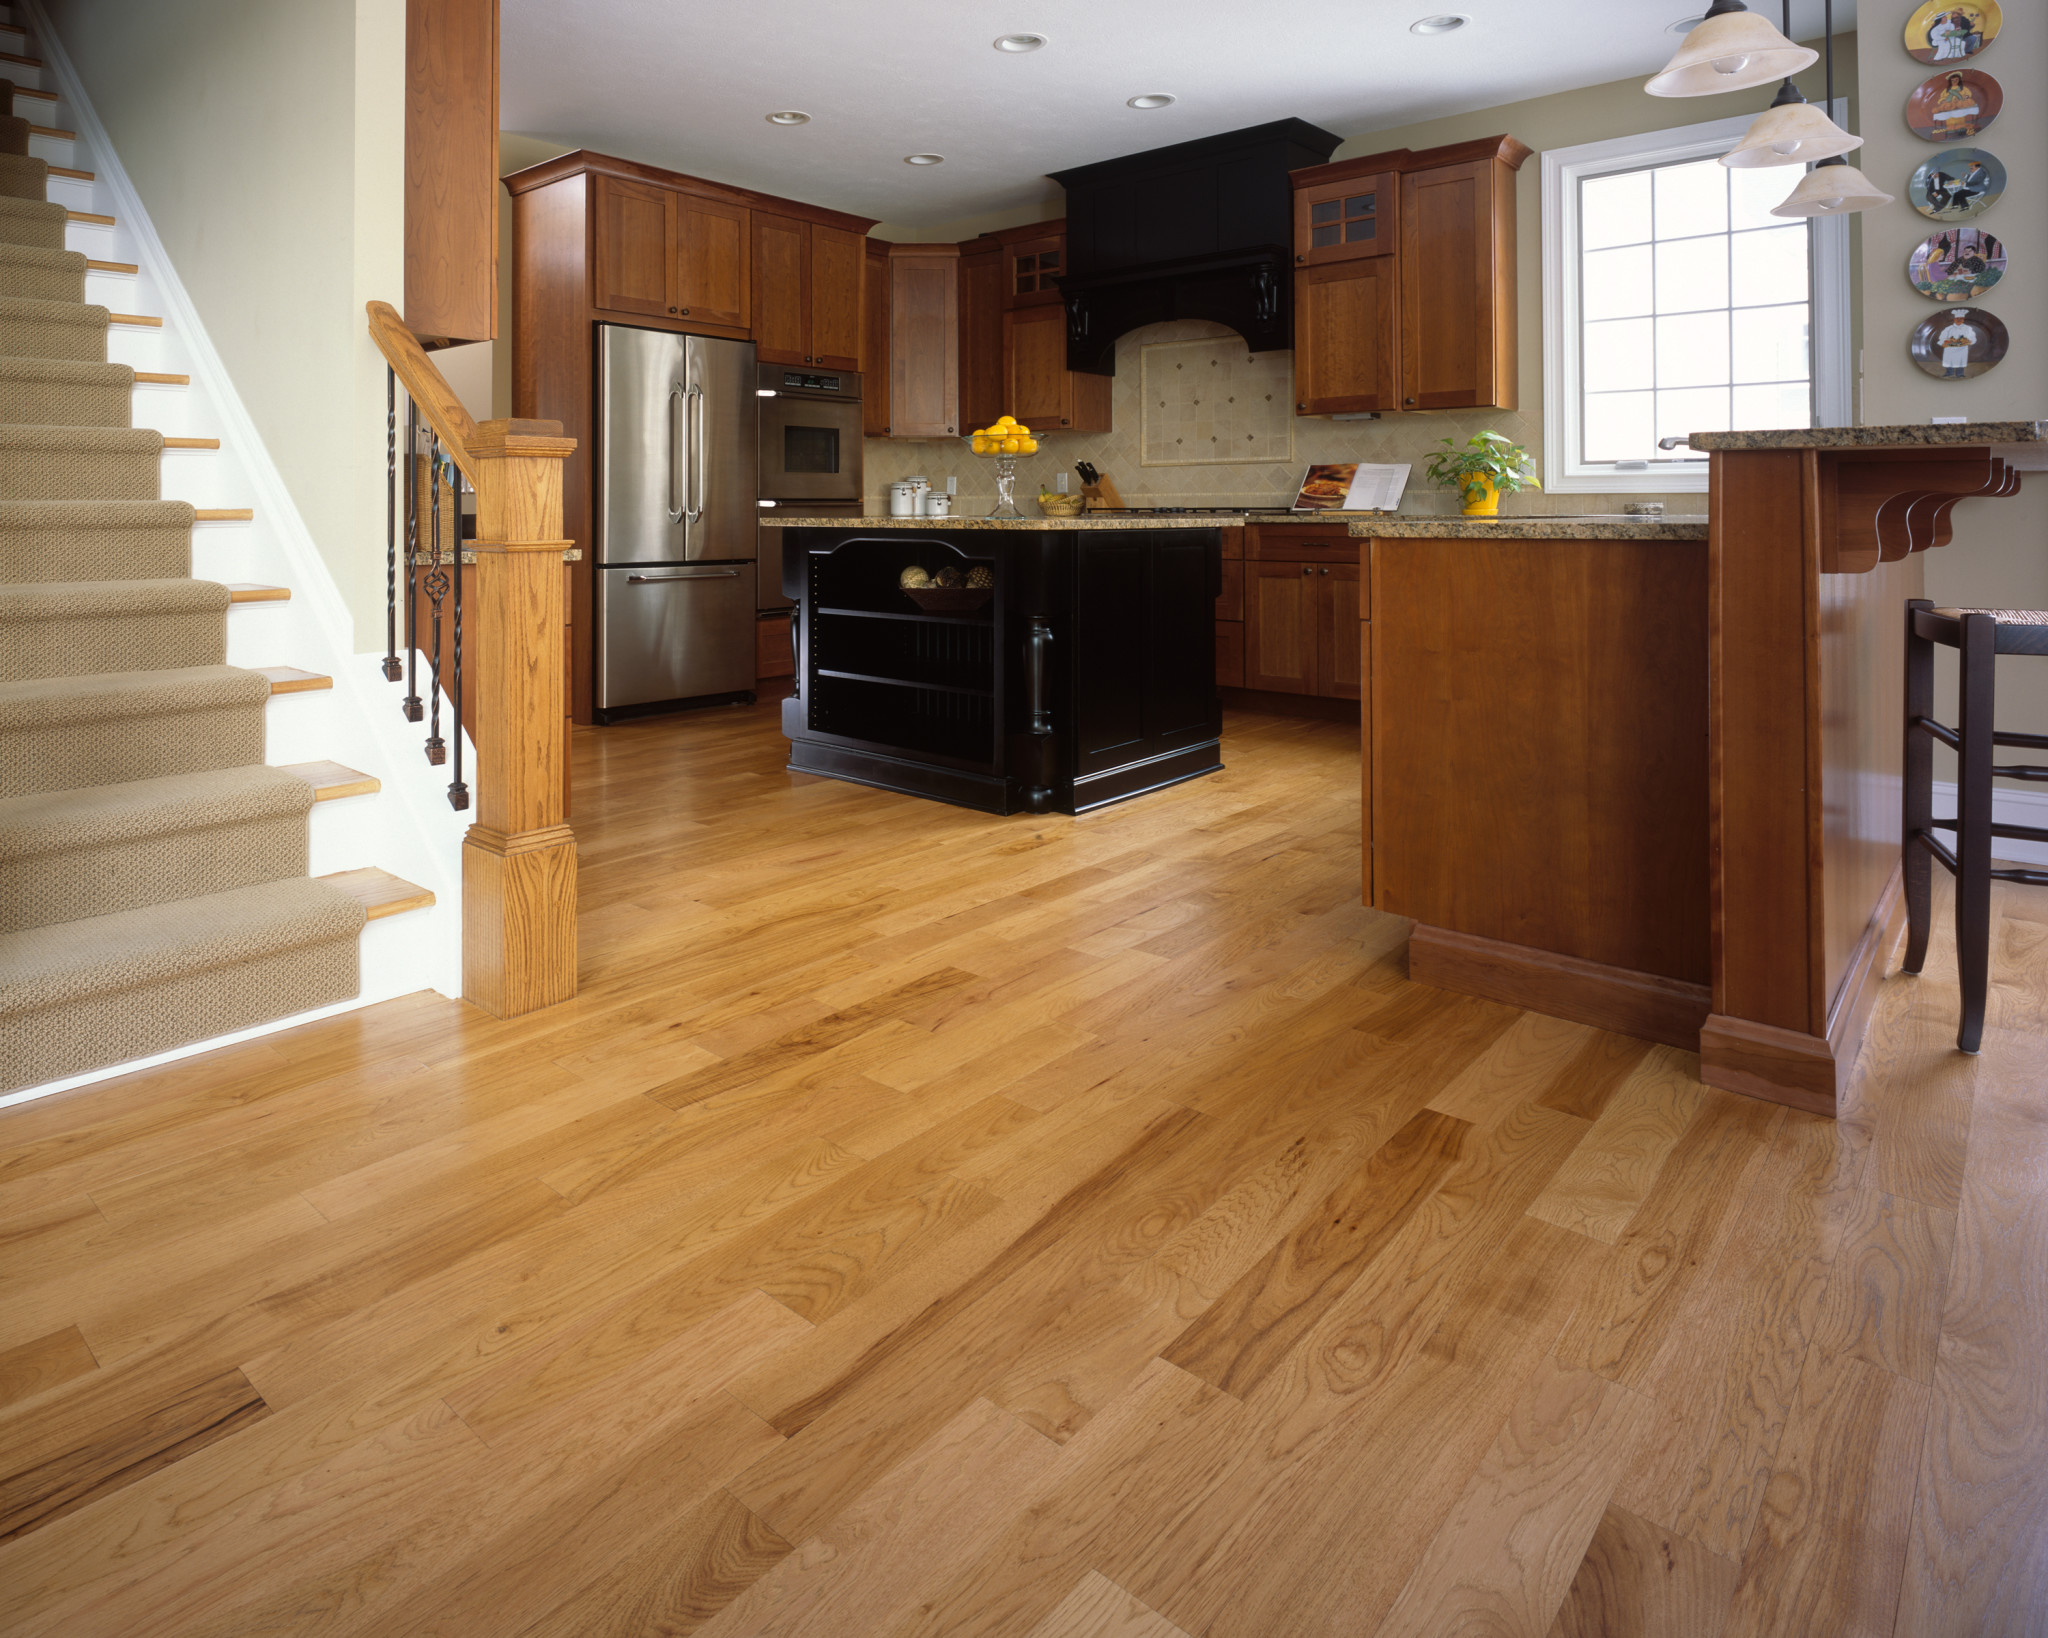 Wooden Floors In Kitchen Wood Floors Tile Linoleum Jmarvinhandyman